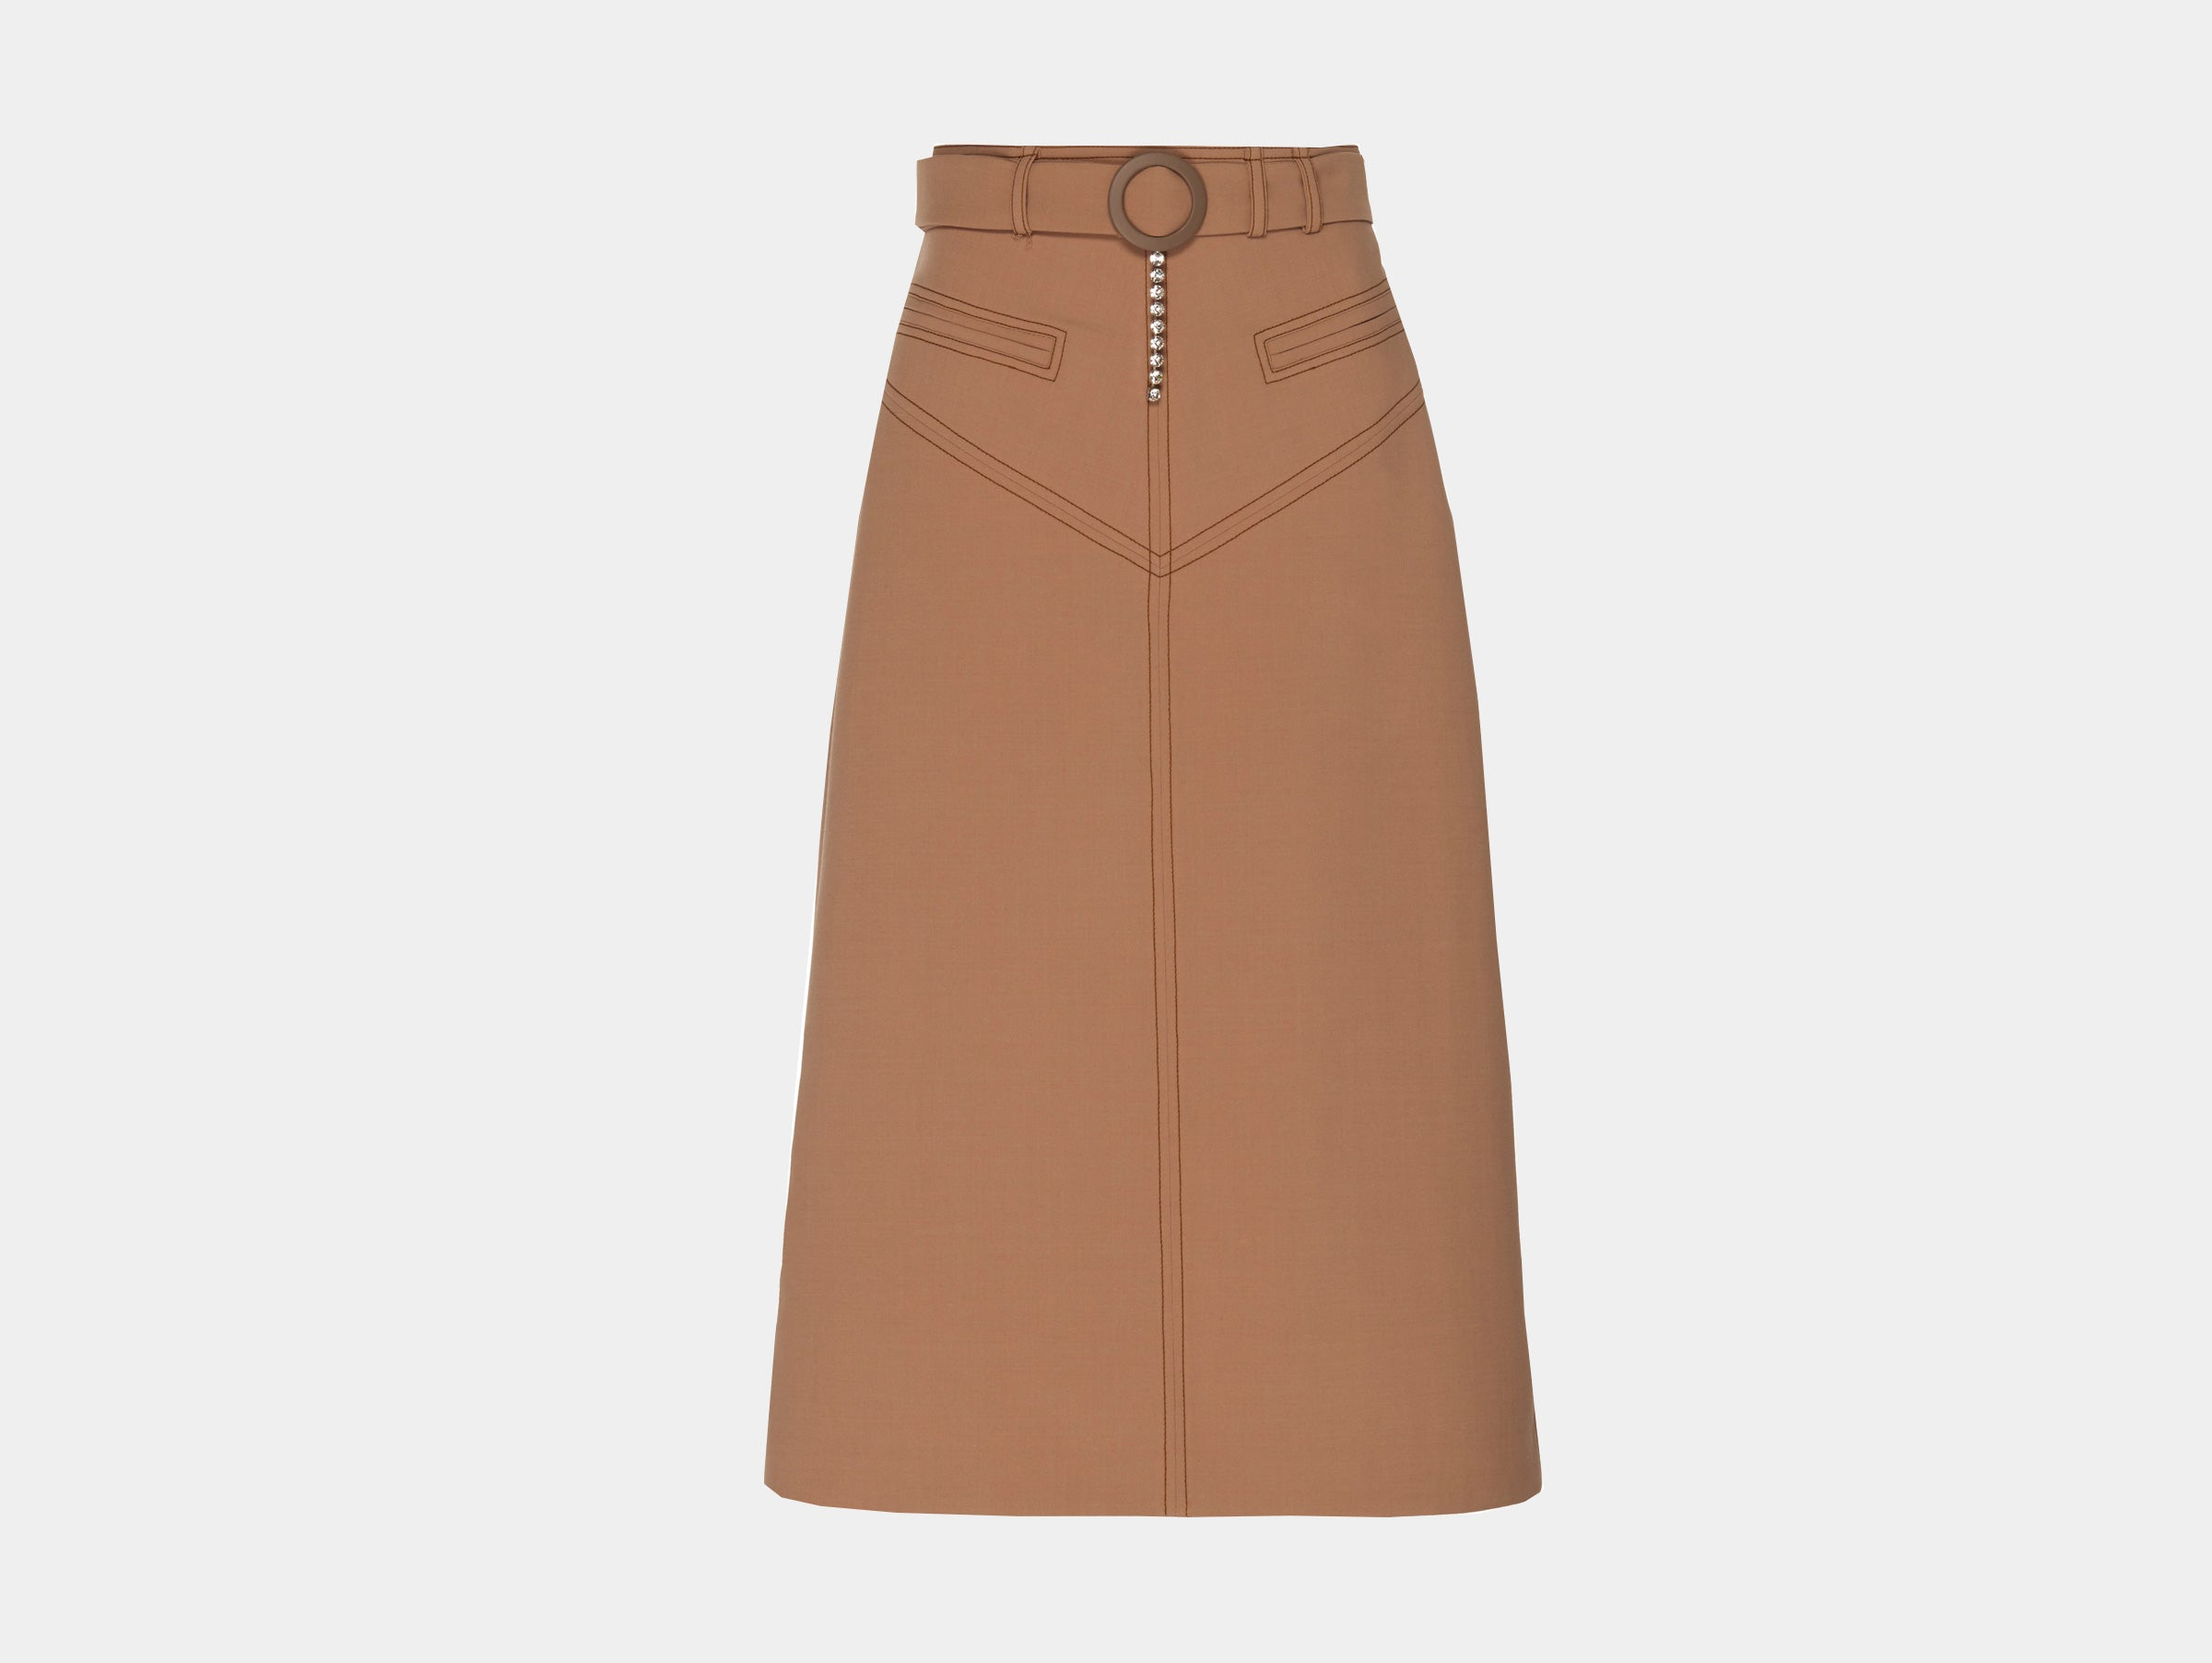 Ellery - Brown beige neutral tailored A-line matango belted midi skirt